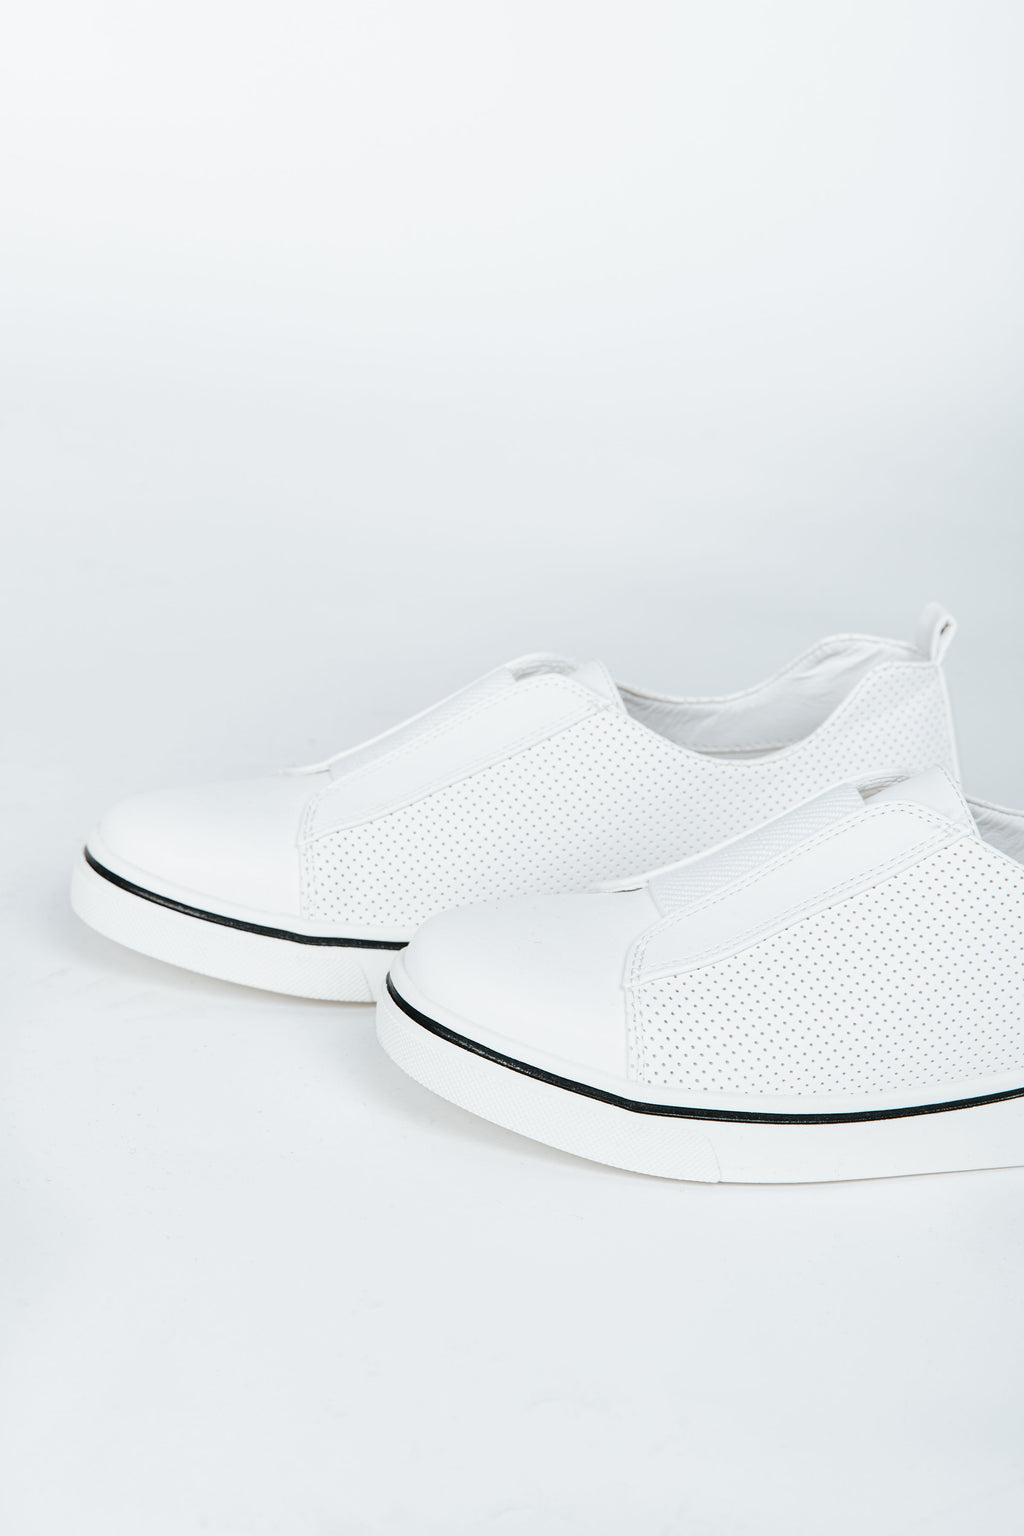 Malta Sneakers in White, studio shoot; side view